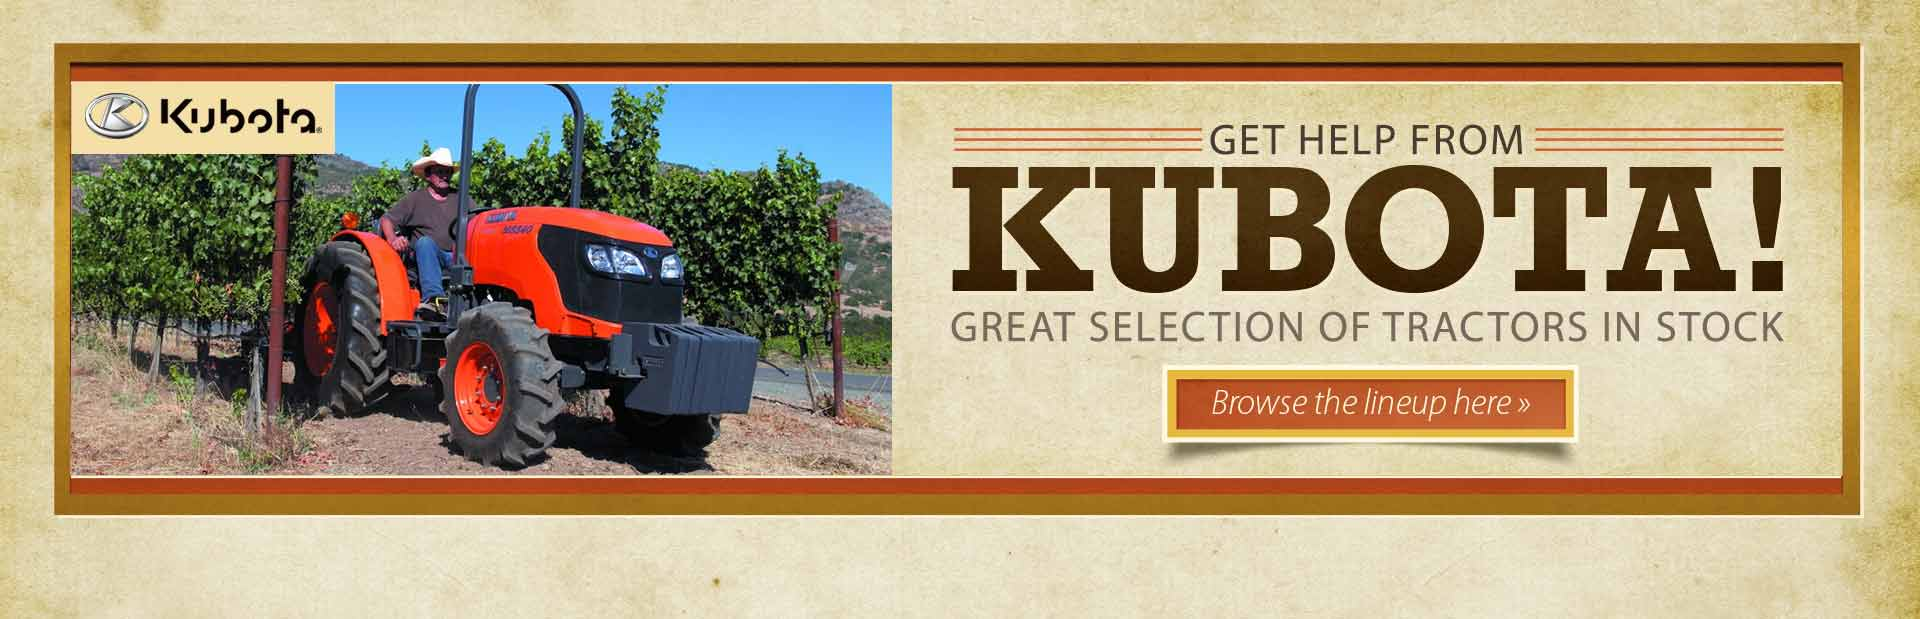 Click here to view Kubota tractors!